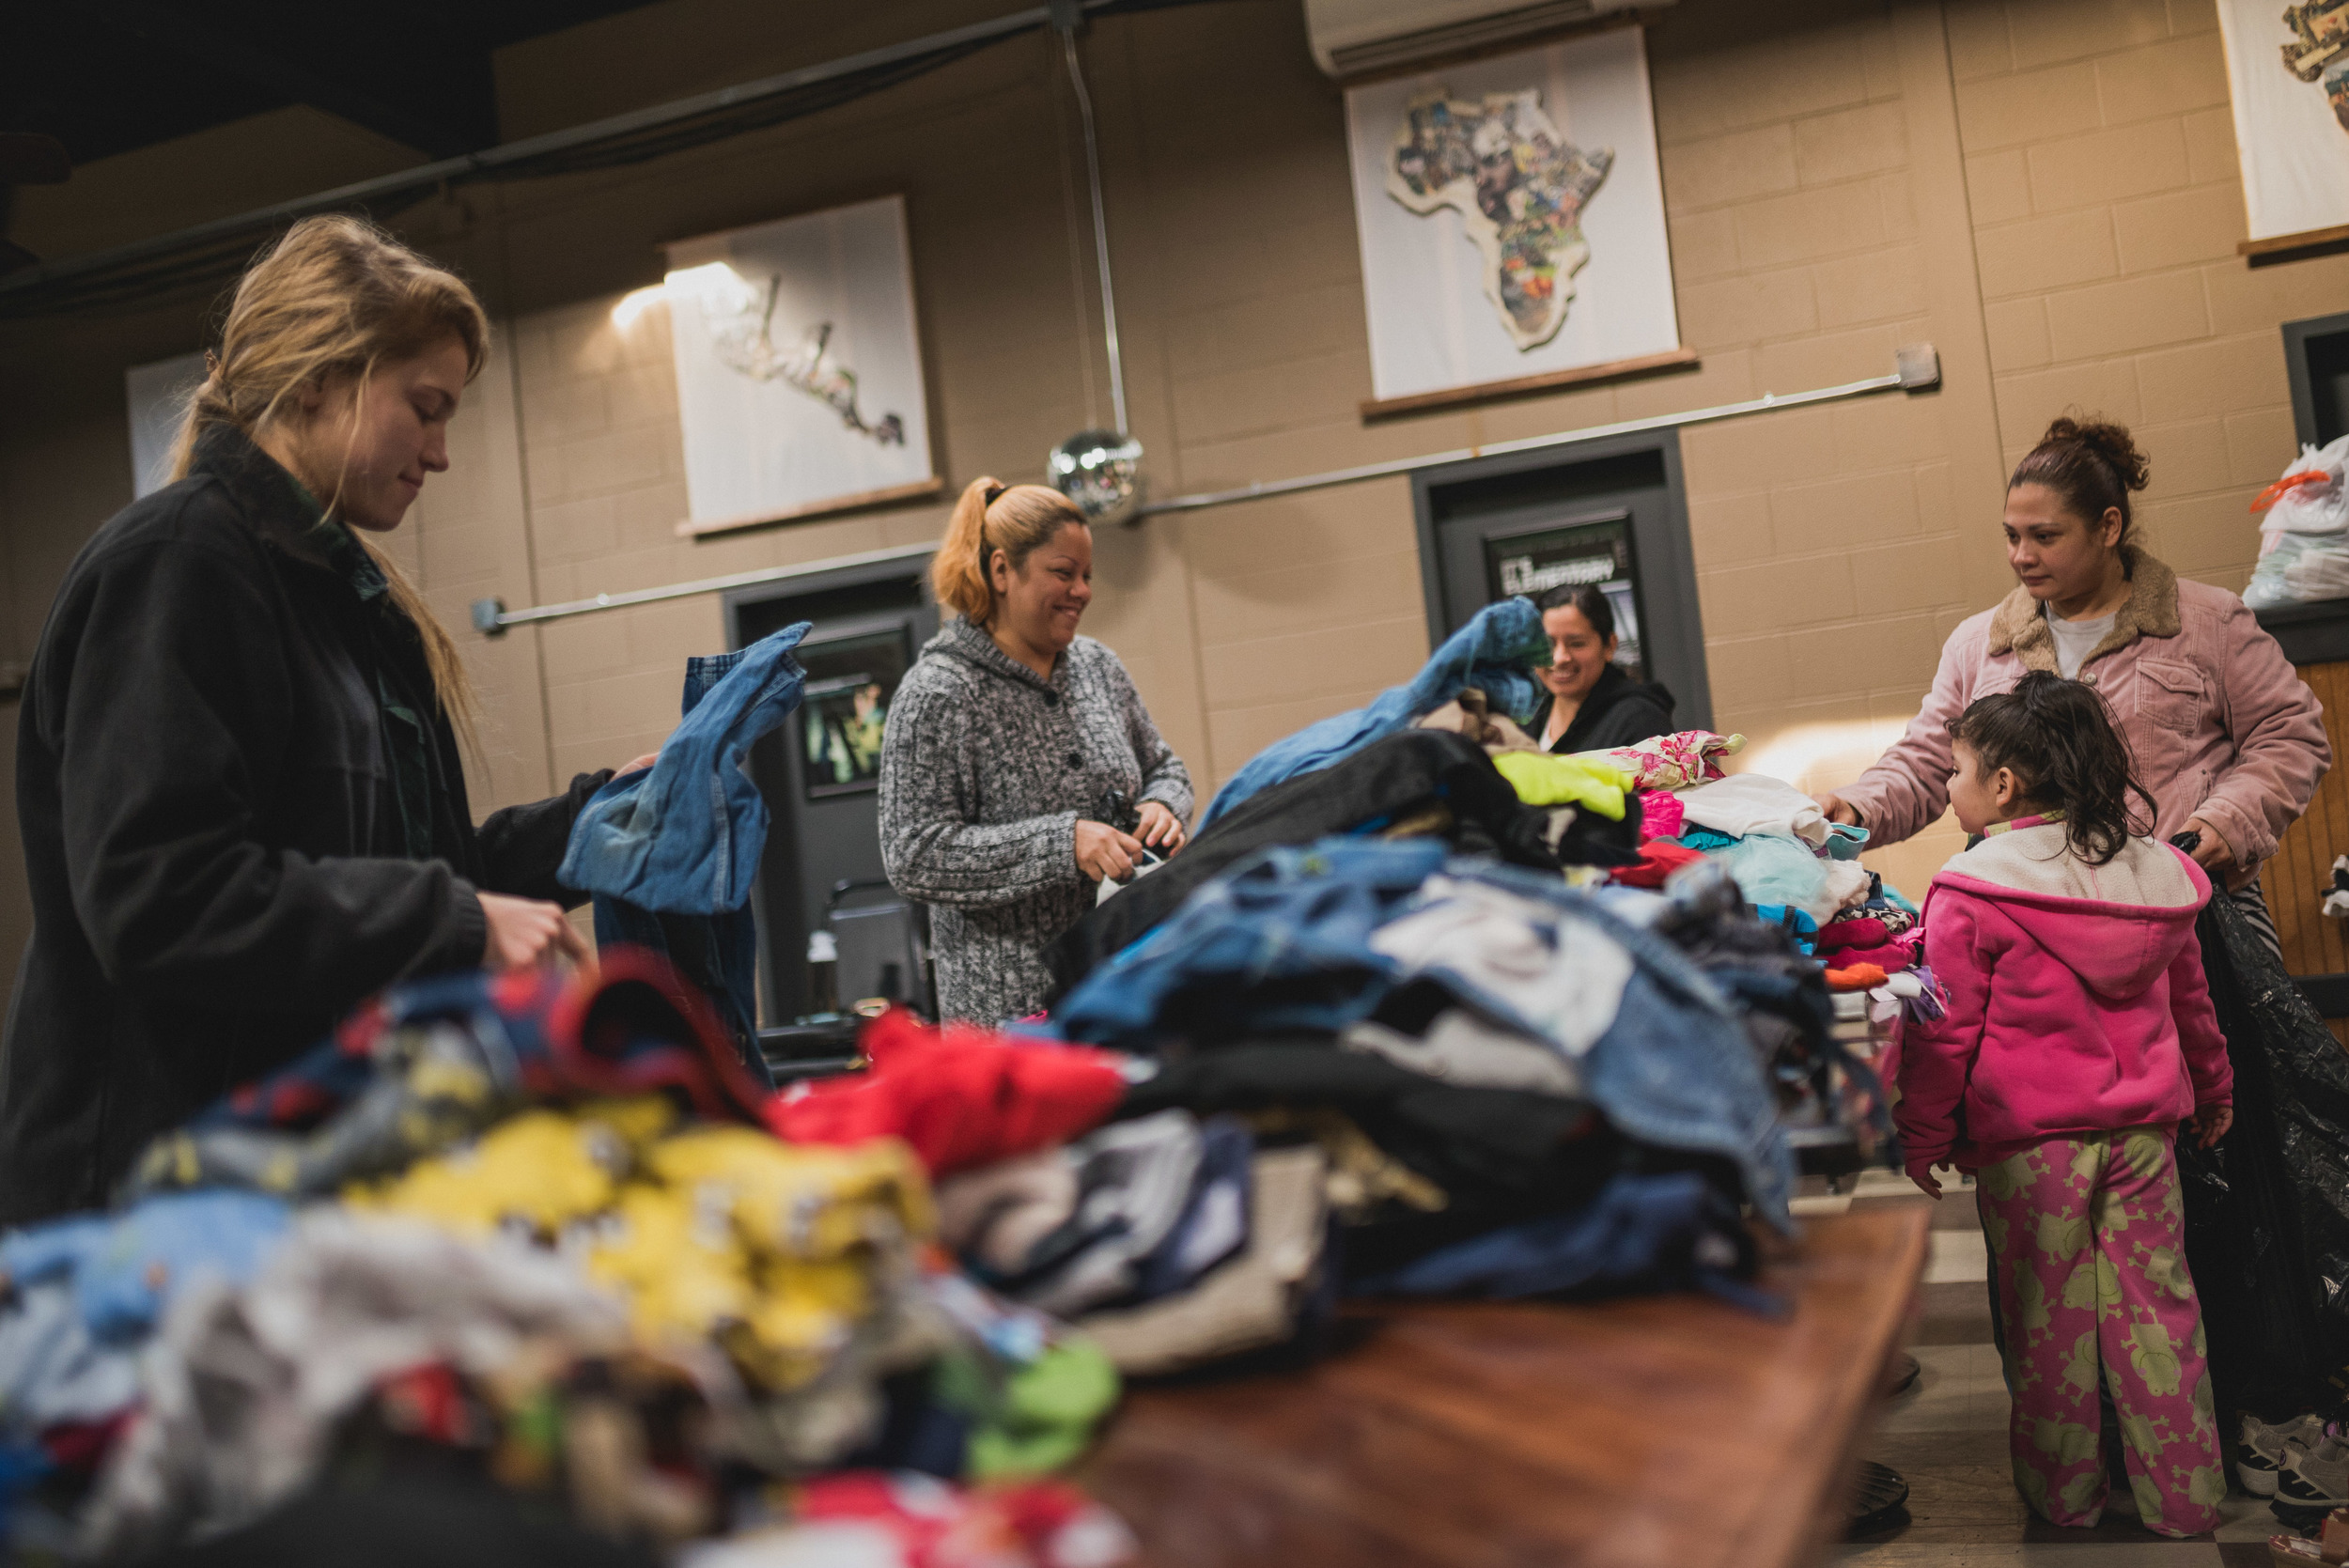 Chapel is followed by community improvement projects, like this one where students organized a free clothing swap for neighbors in need in the cold winter months.